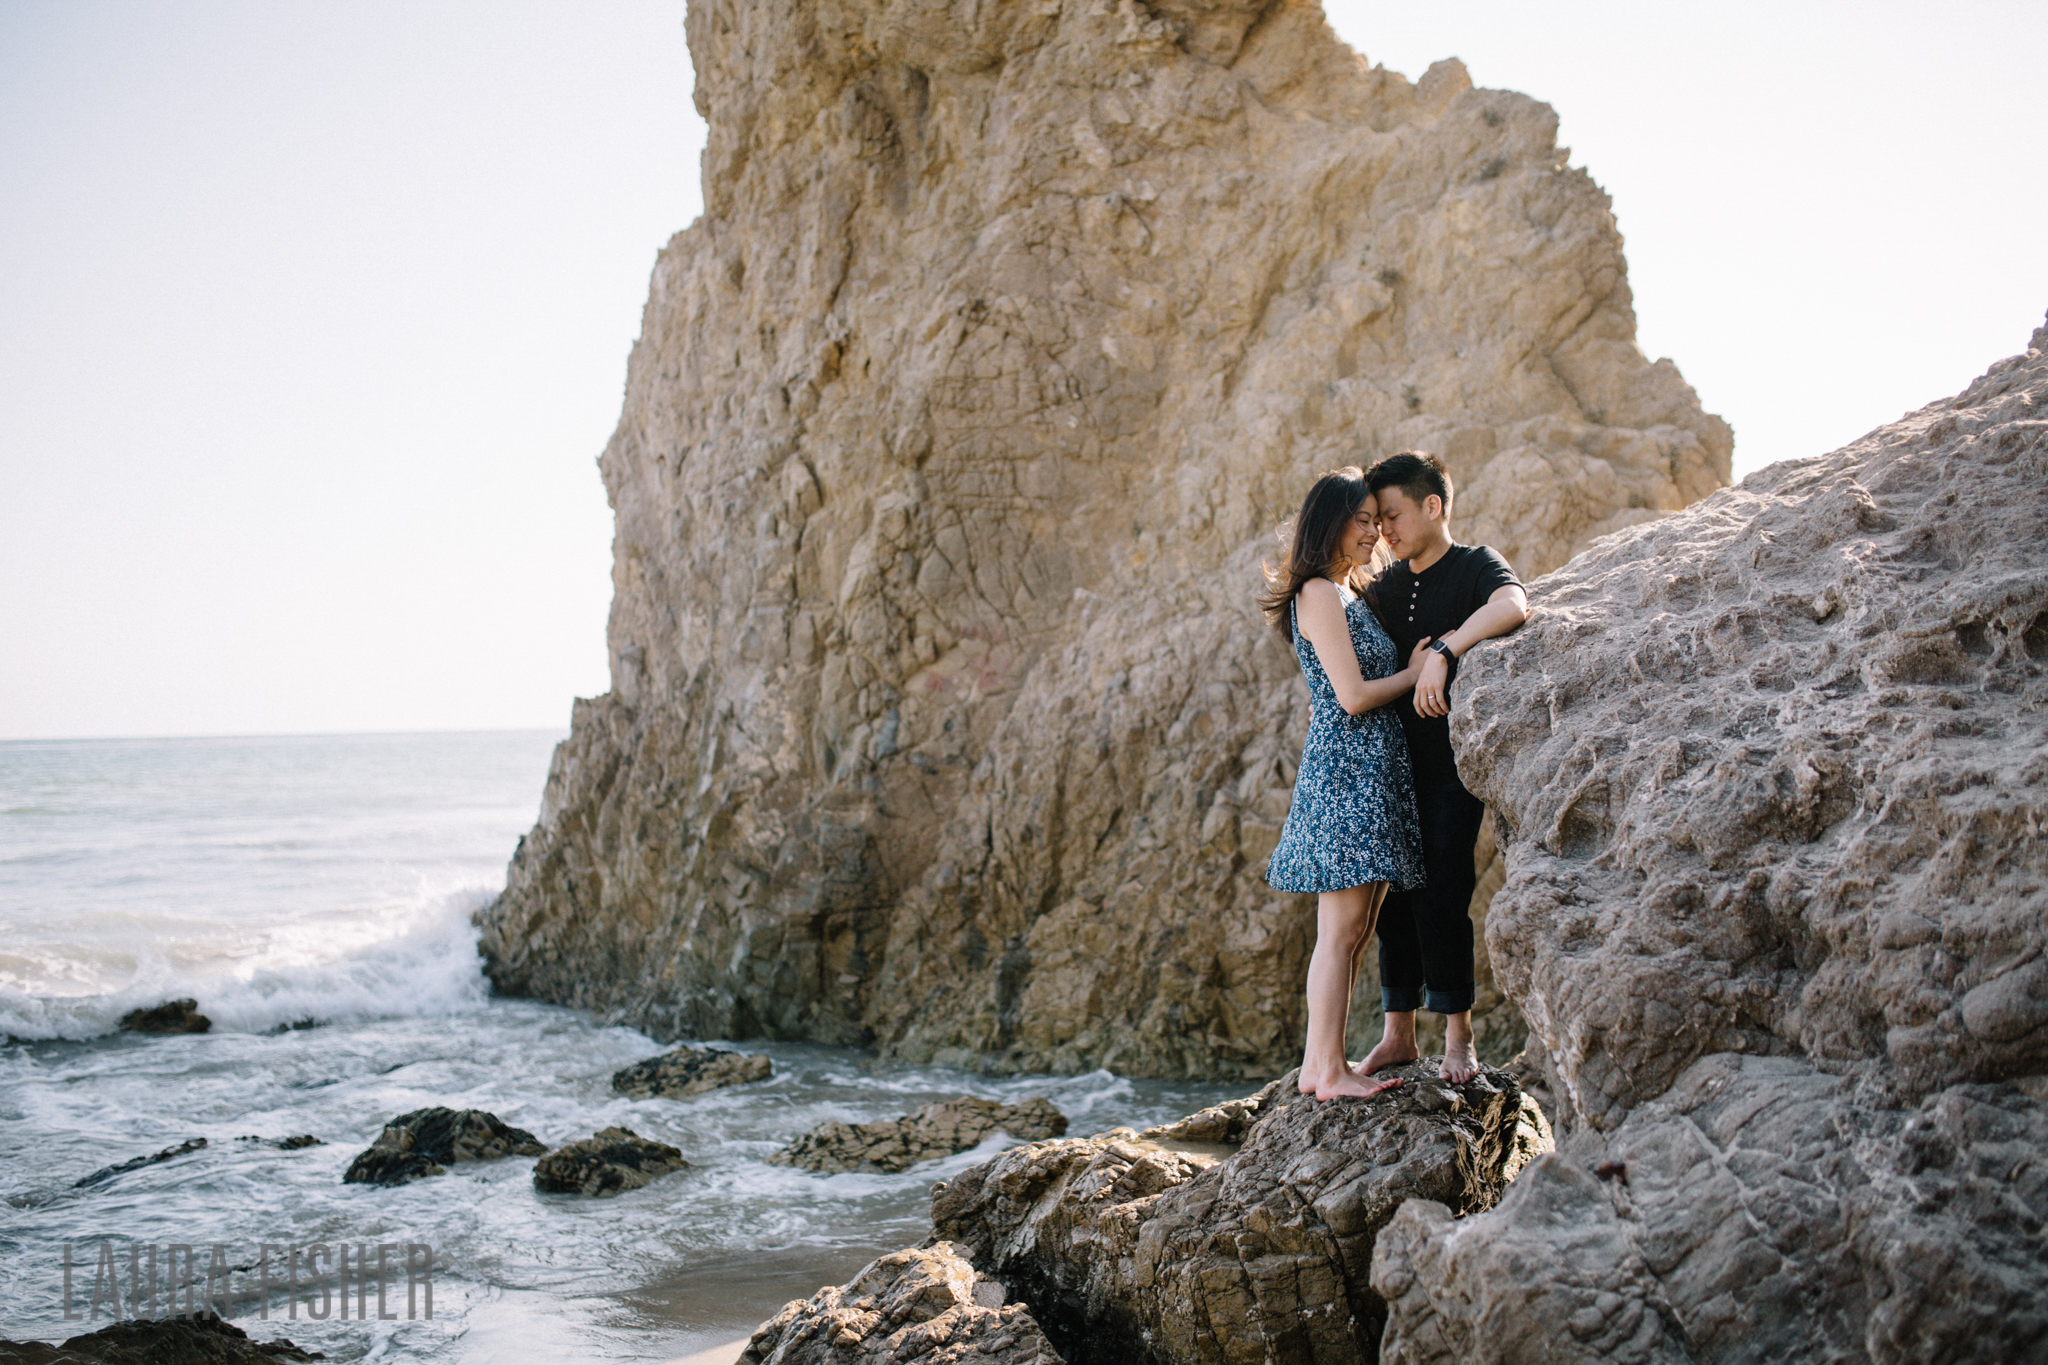 malibu-california-wedding-el-matador-beach-laura-fisher-photography-0004.jpg